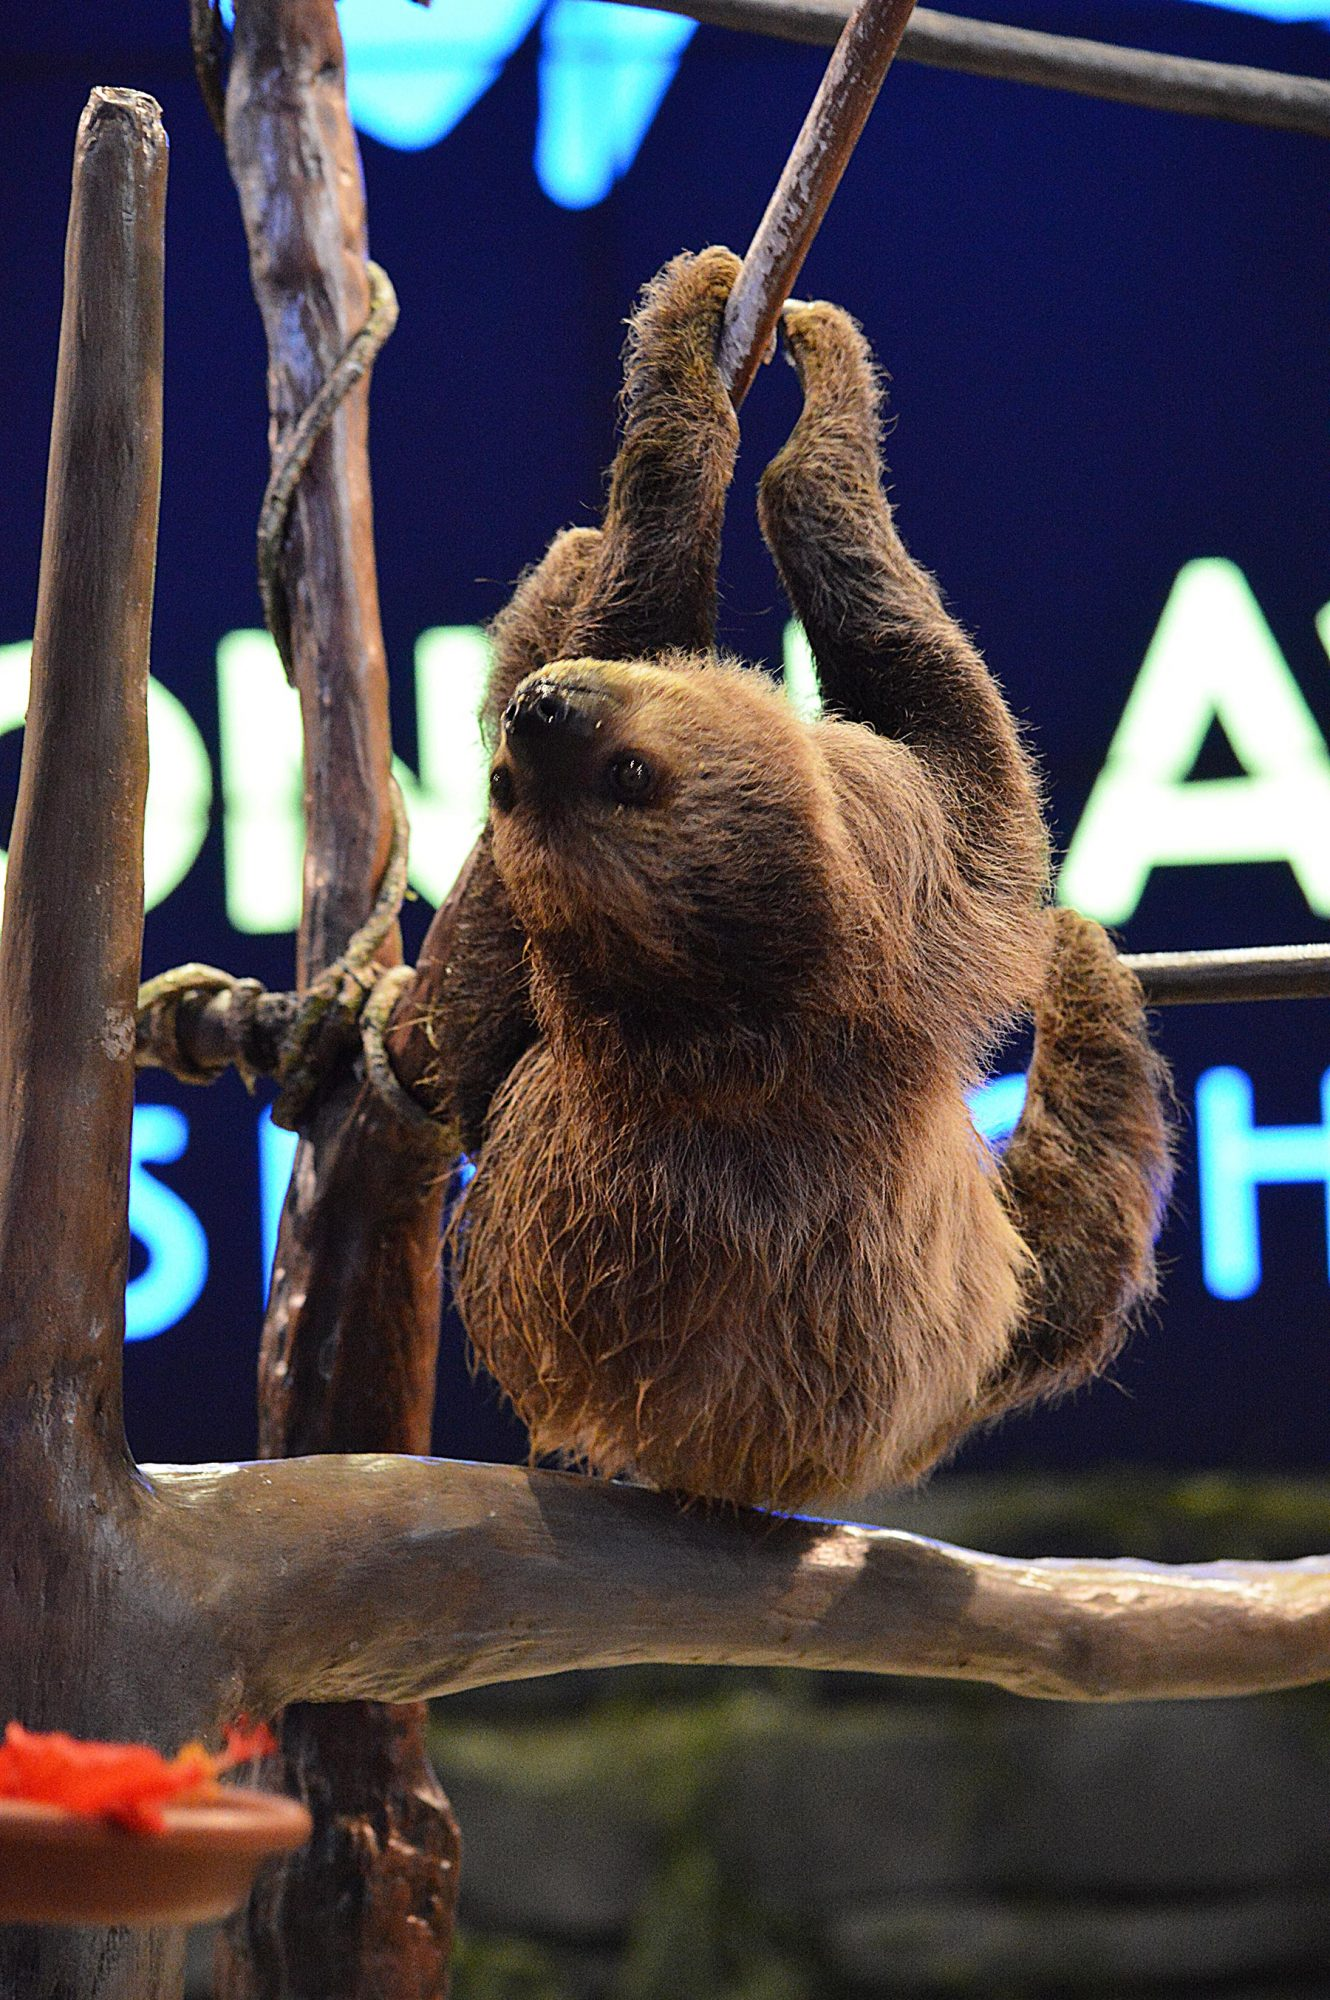 Sloth Birthday CR: Courtesy The National Aviary